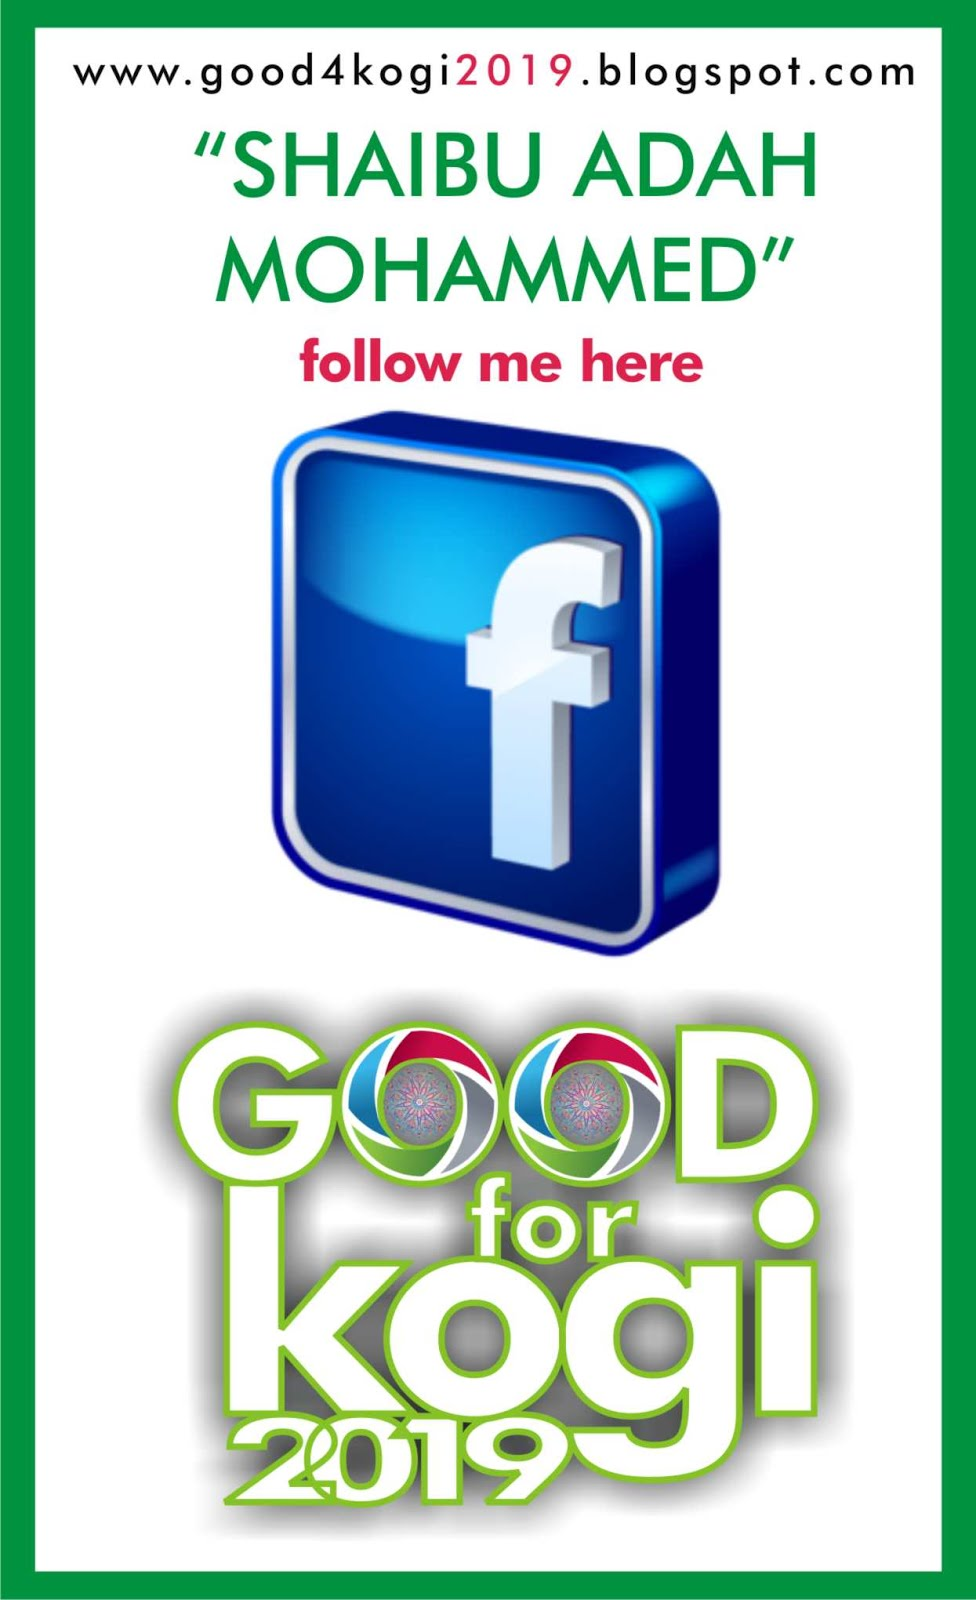 FOLLOW ME ON FACEBOOK NOW AND LETS TALK